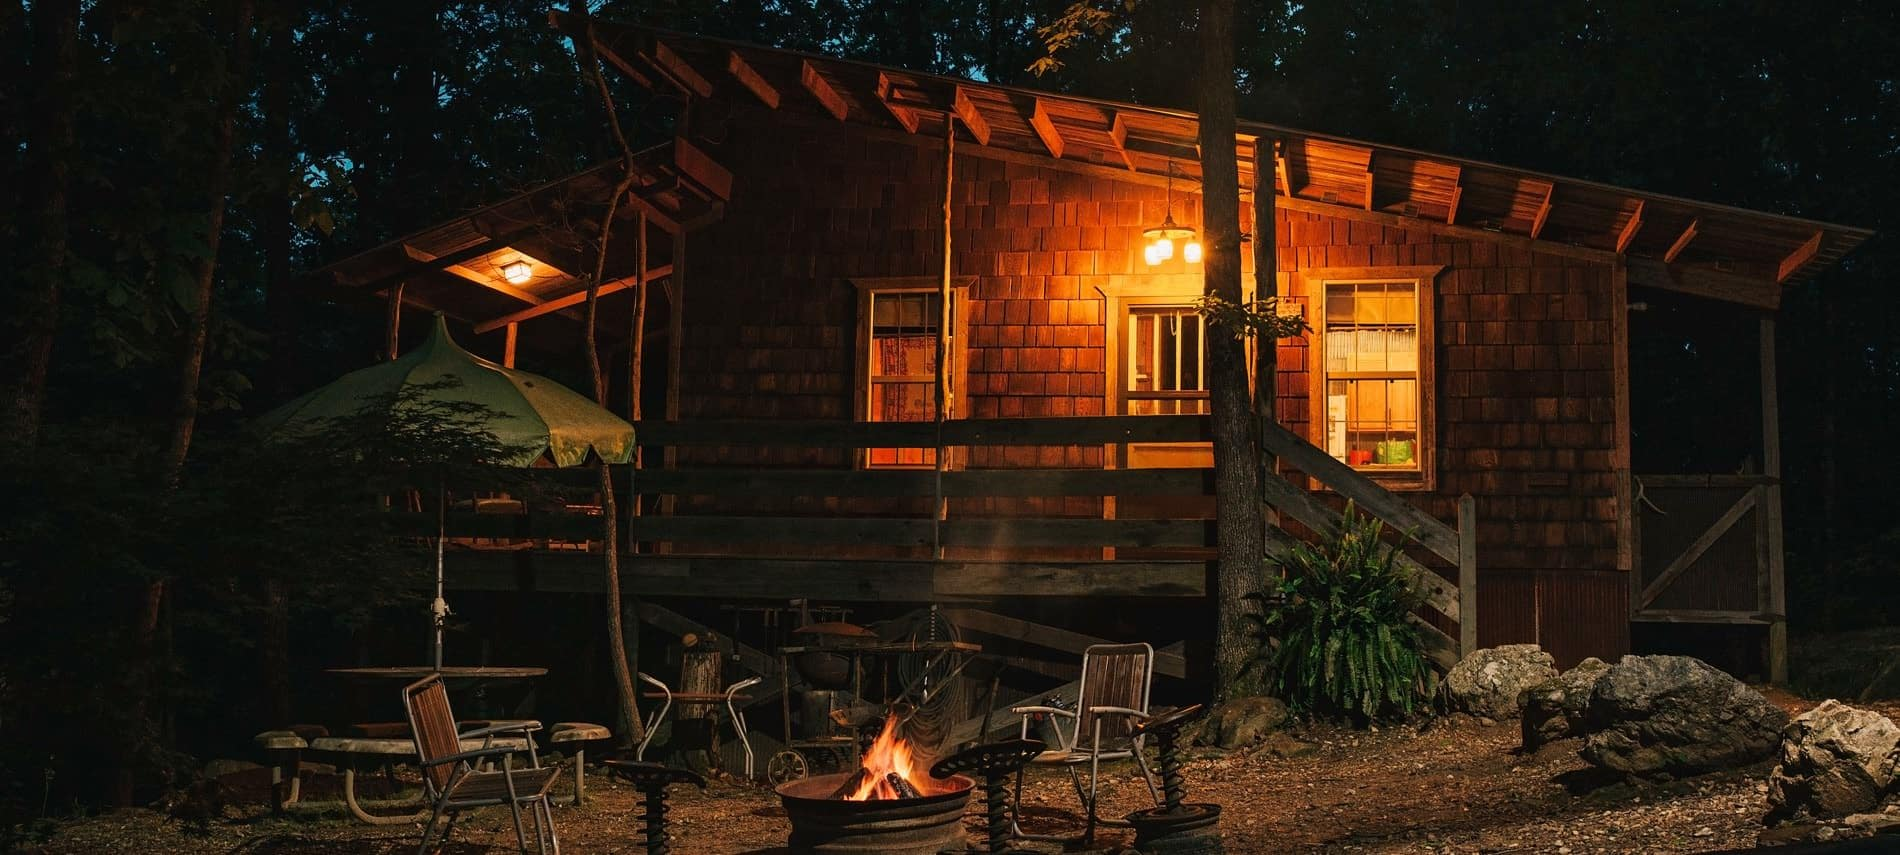 Cabin exterior at night with round patio umbrella table and chairs around a warm glowing fire pit